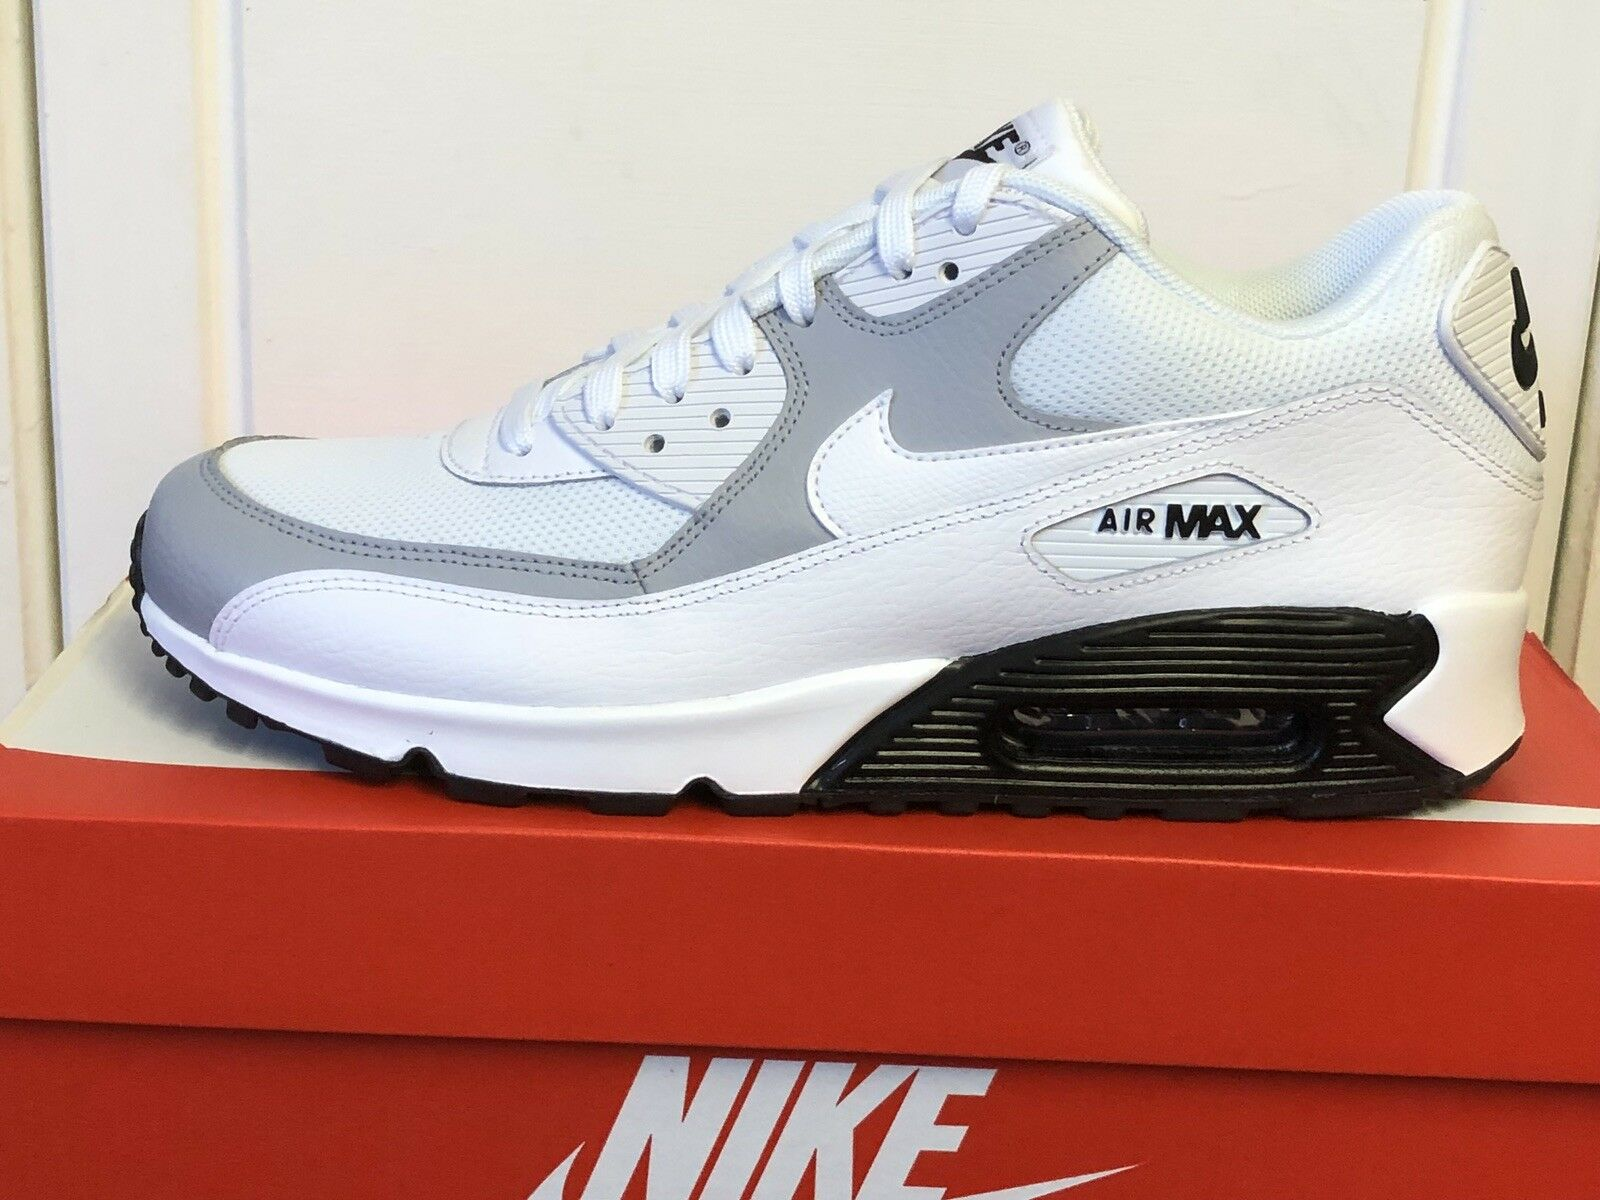 NIKE AIR MAX 90 WO Hommes EUR Hommes TRAINERS SNEAKERS SHOES8,5 EUR Hommes 43 17ae61